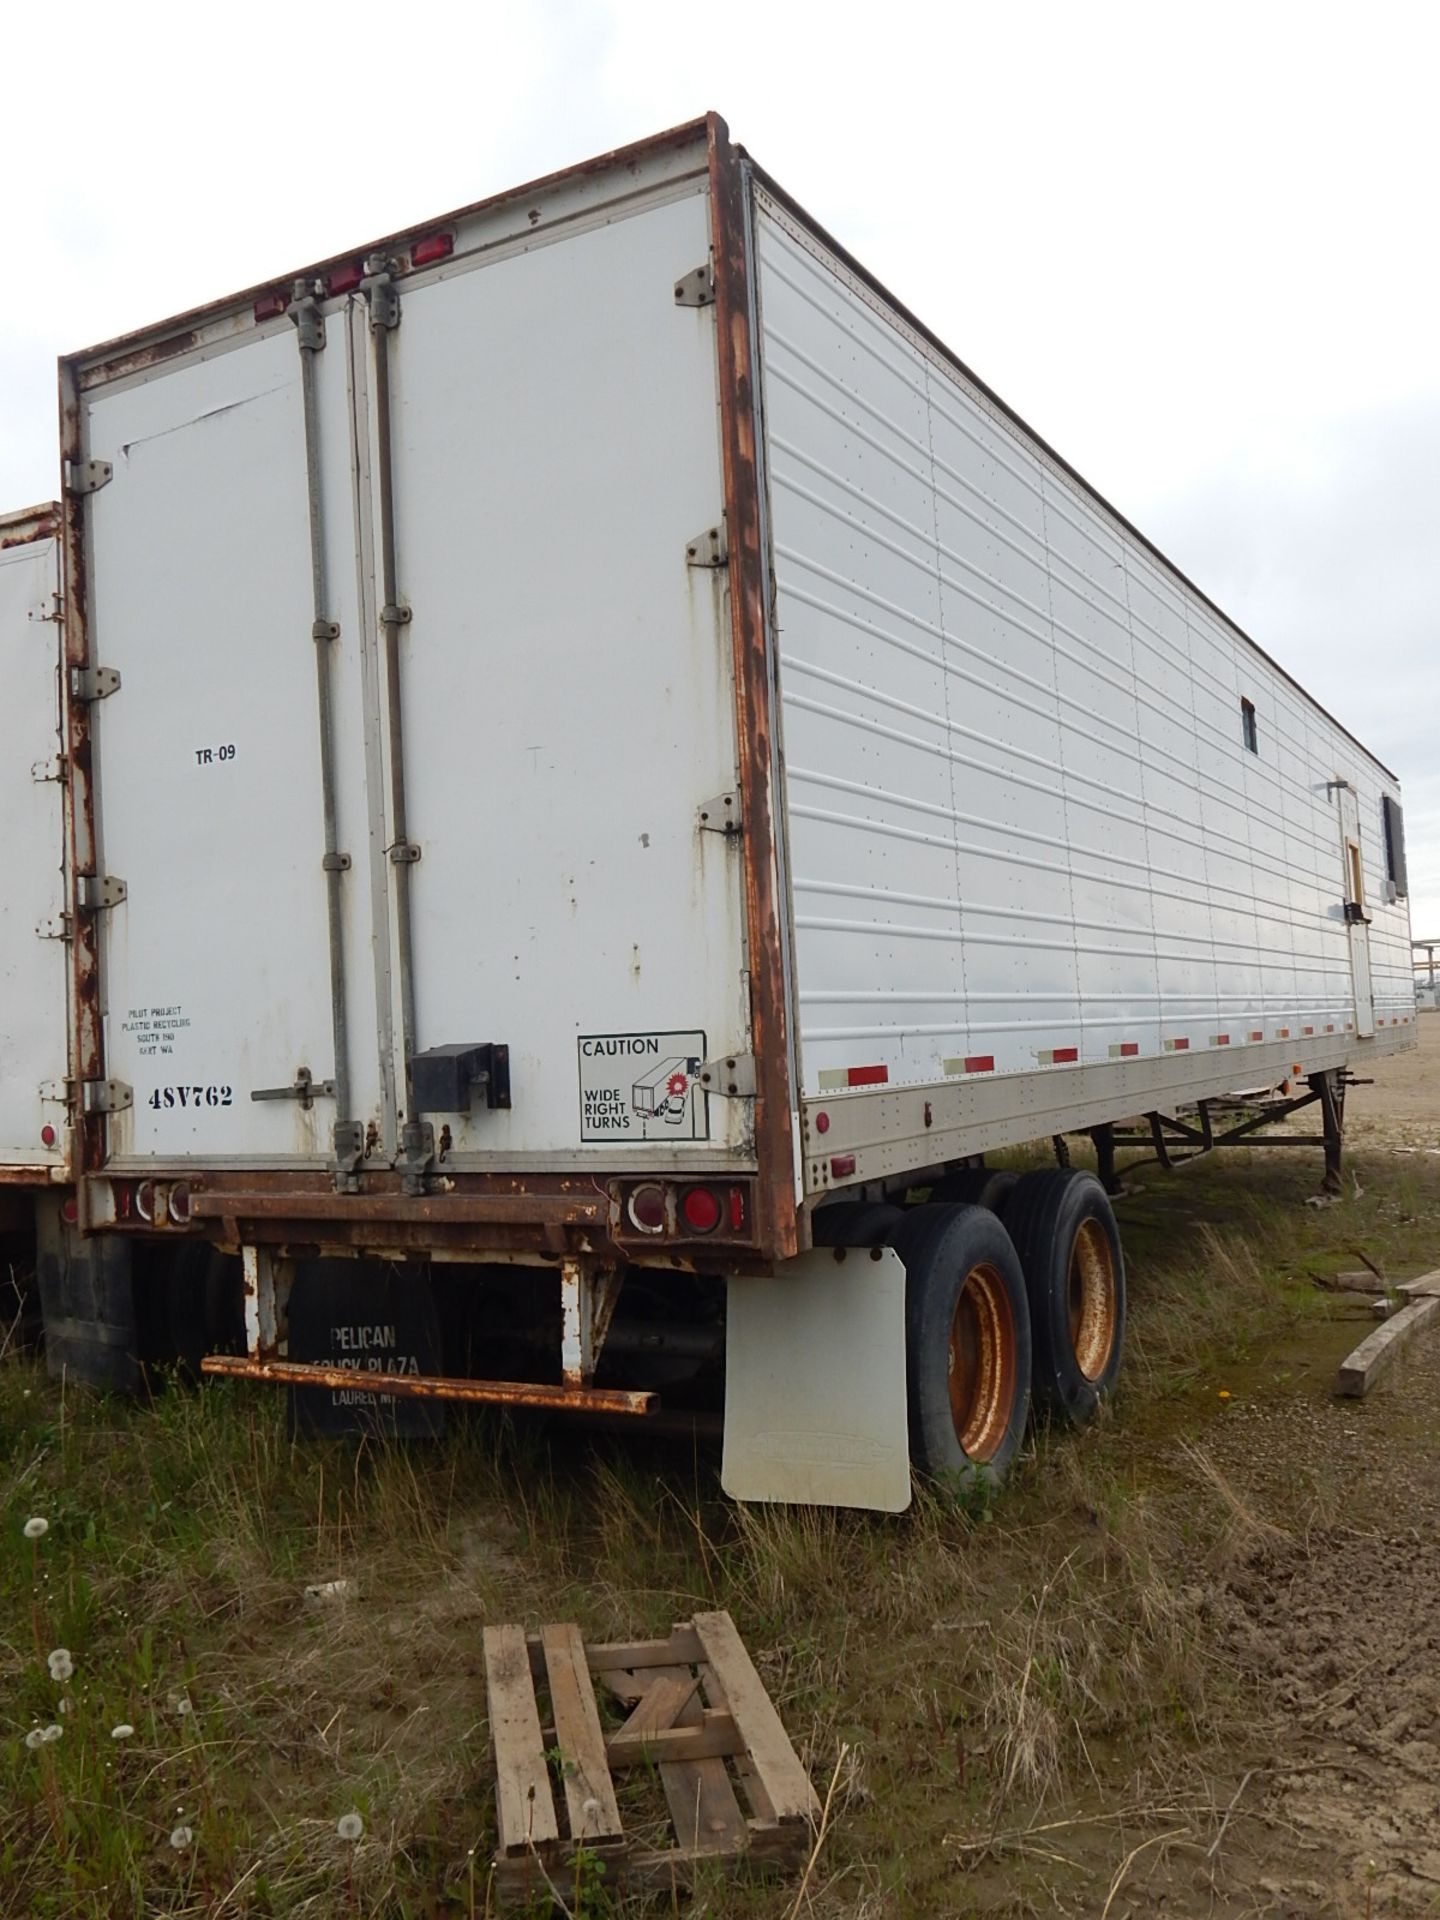 53' YARD TRAILER, S/N: N/A (NO REGISTRATION) (CI) - Image 3 of 5